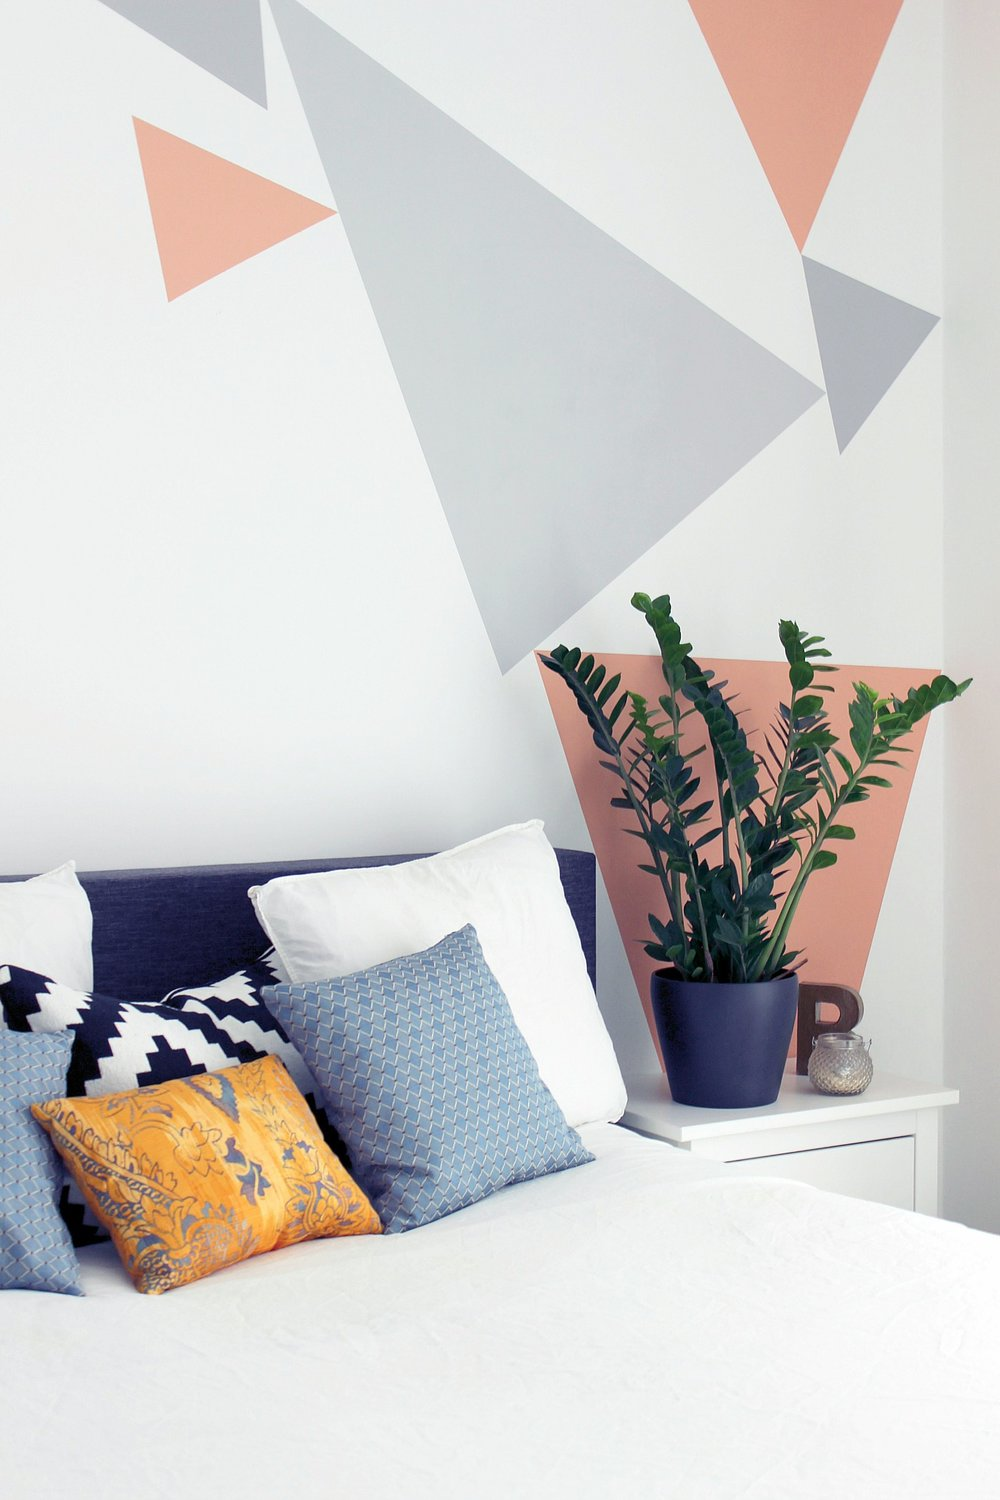 bedroom-white-colourful-cushions-plant